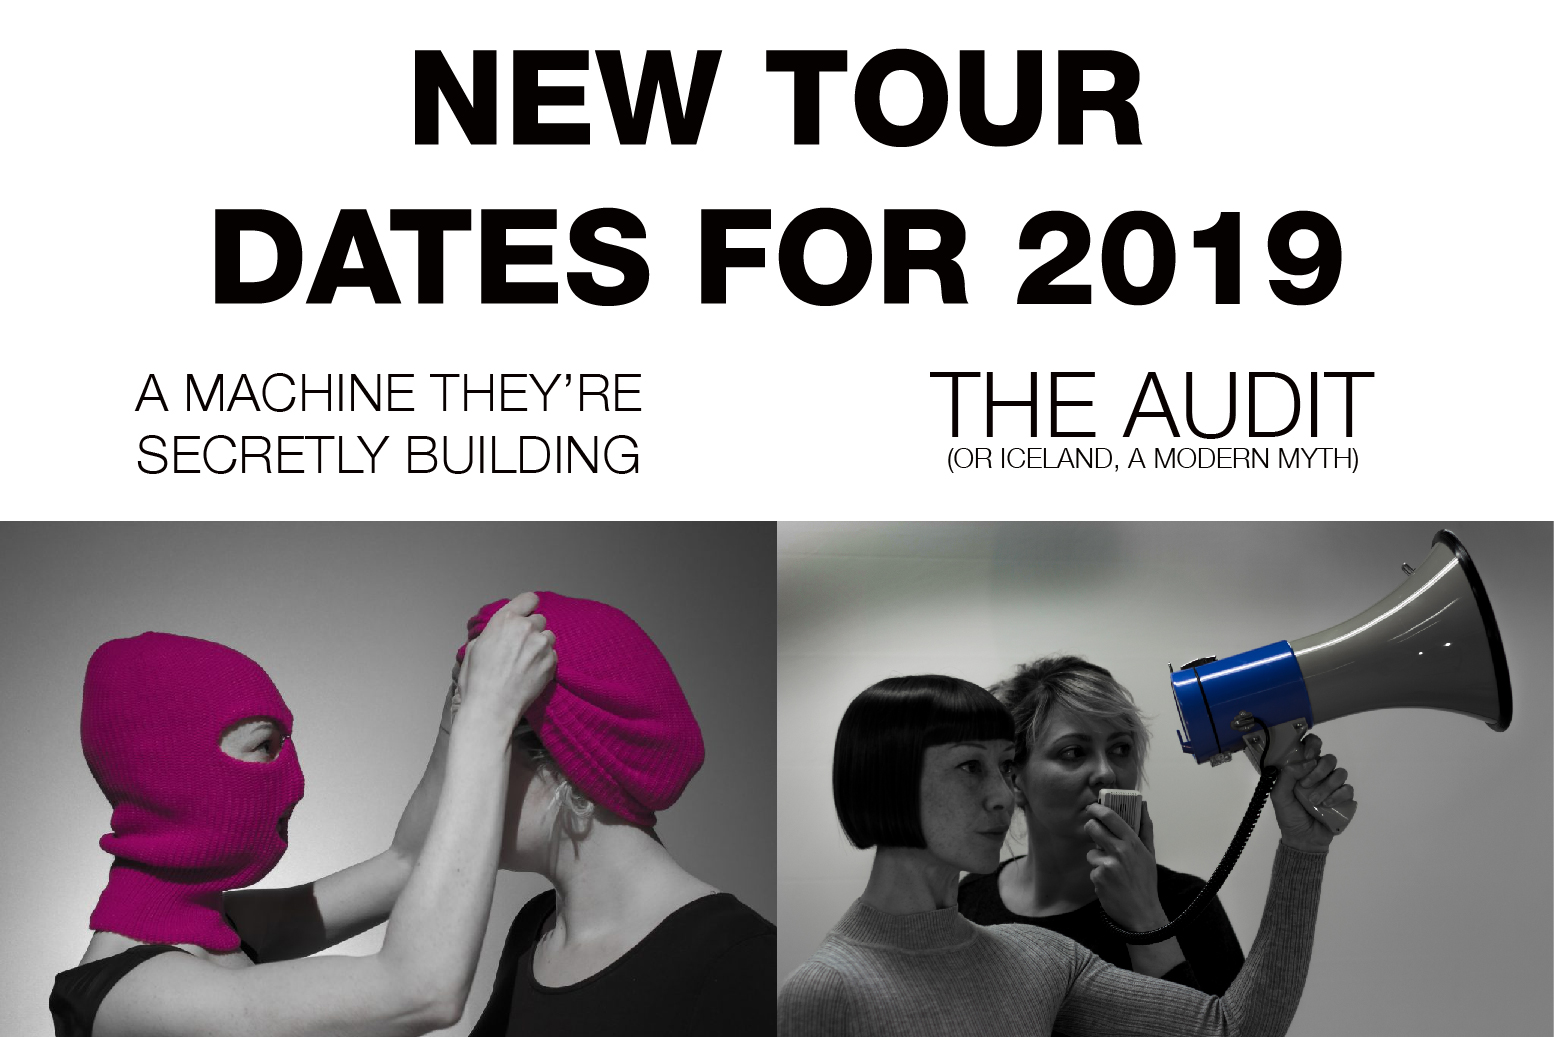 A poster for the 2019 tour of Proto-type Theater's The Audit & A Machine they're Secretly Building.